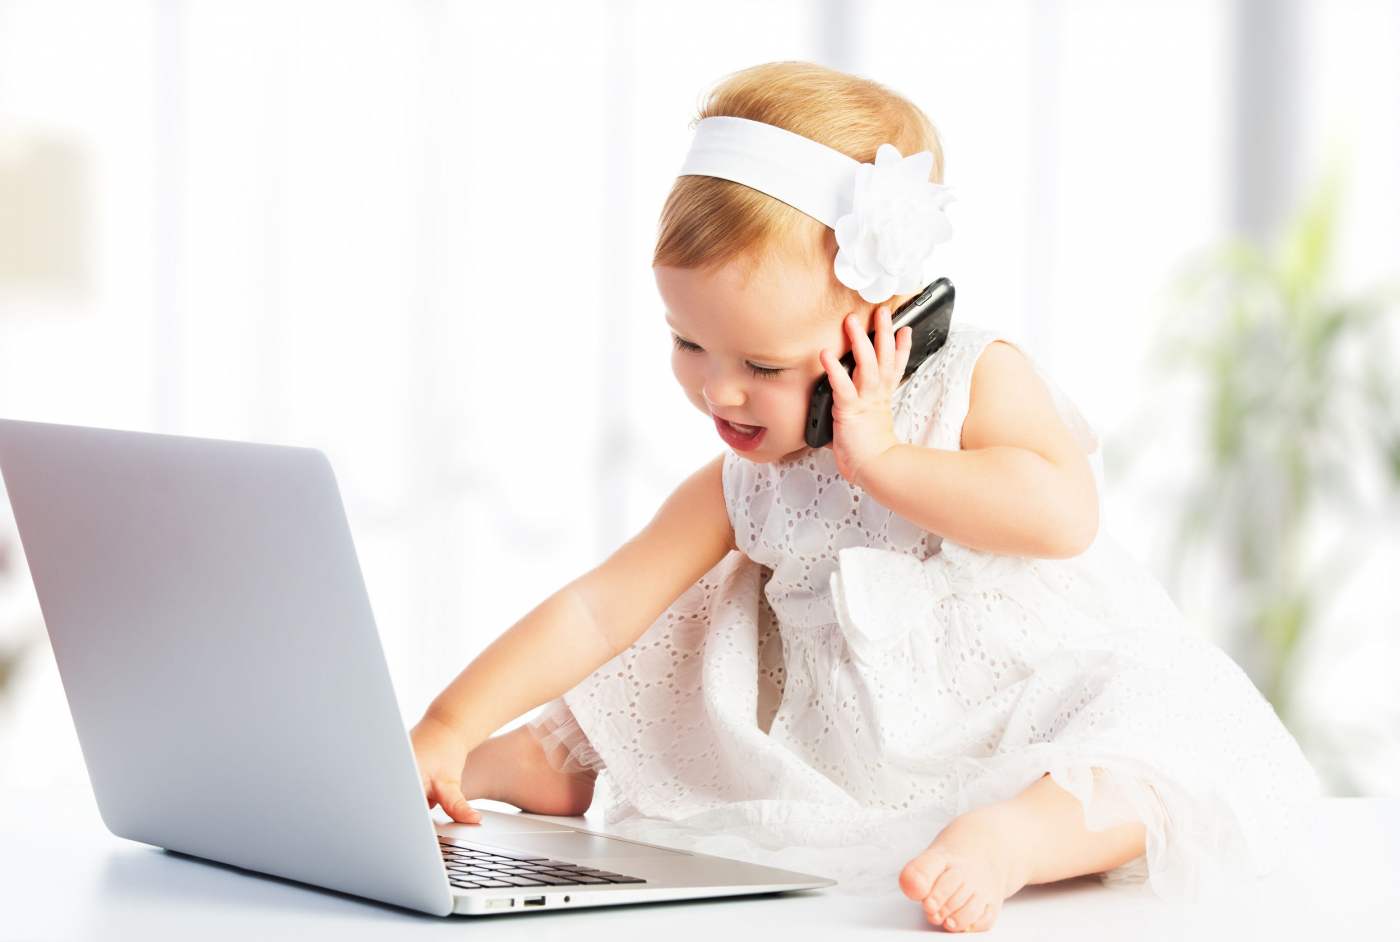 Image of baby on the phone in front of a computer